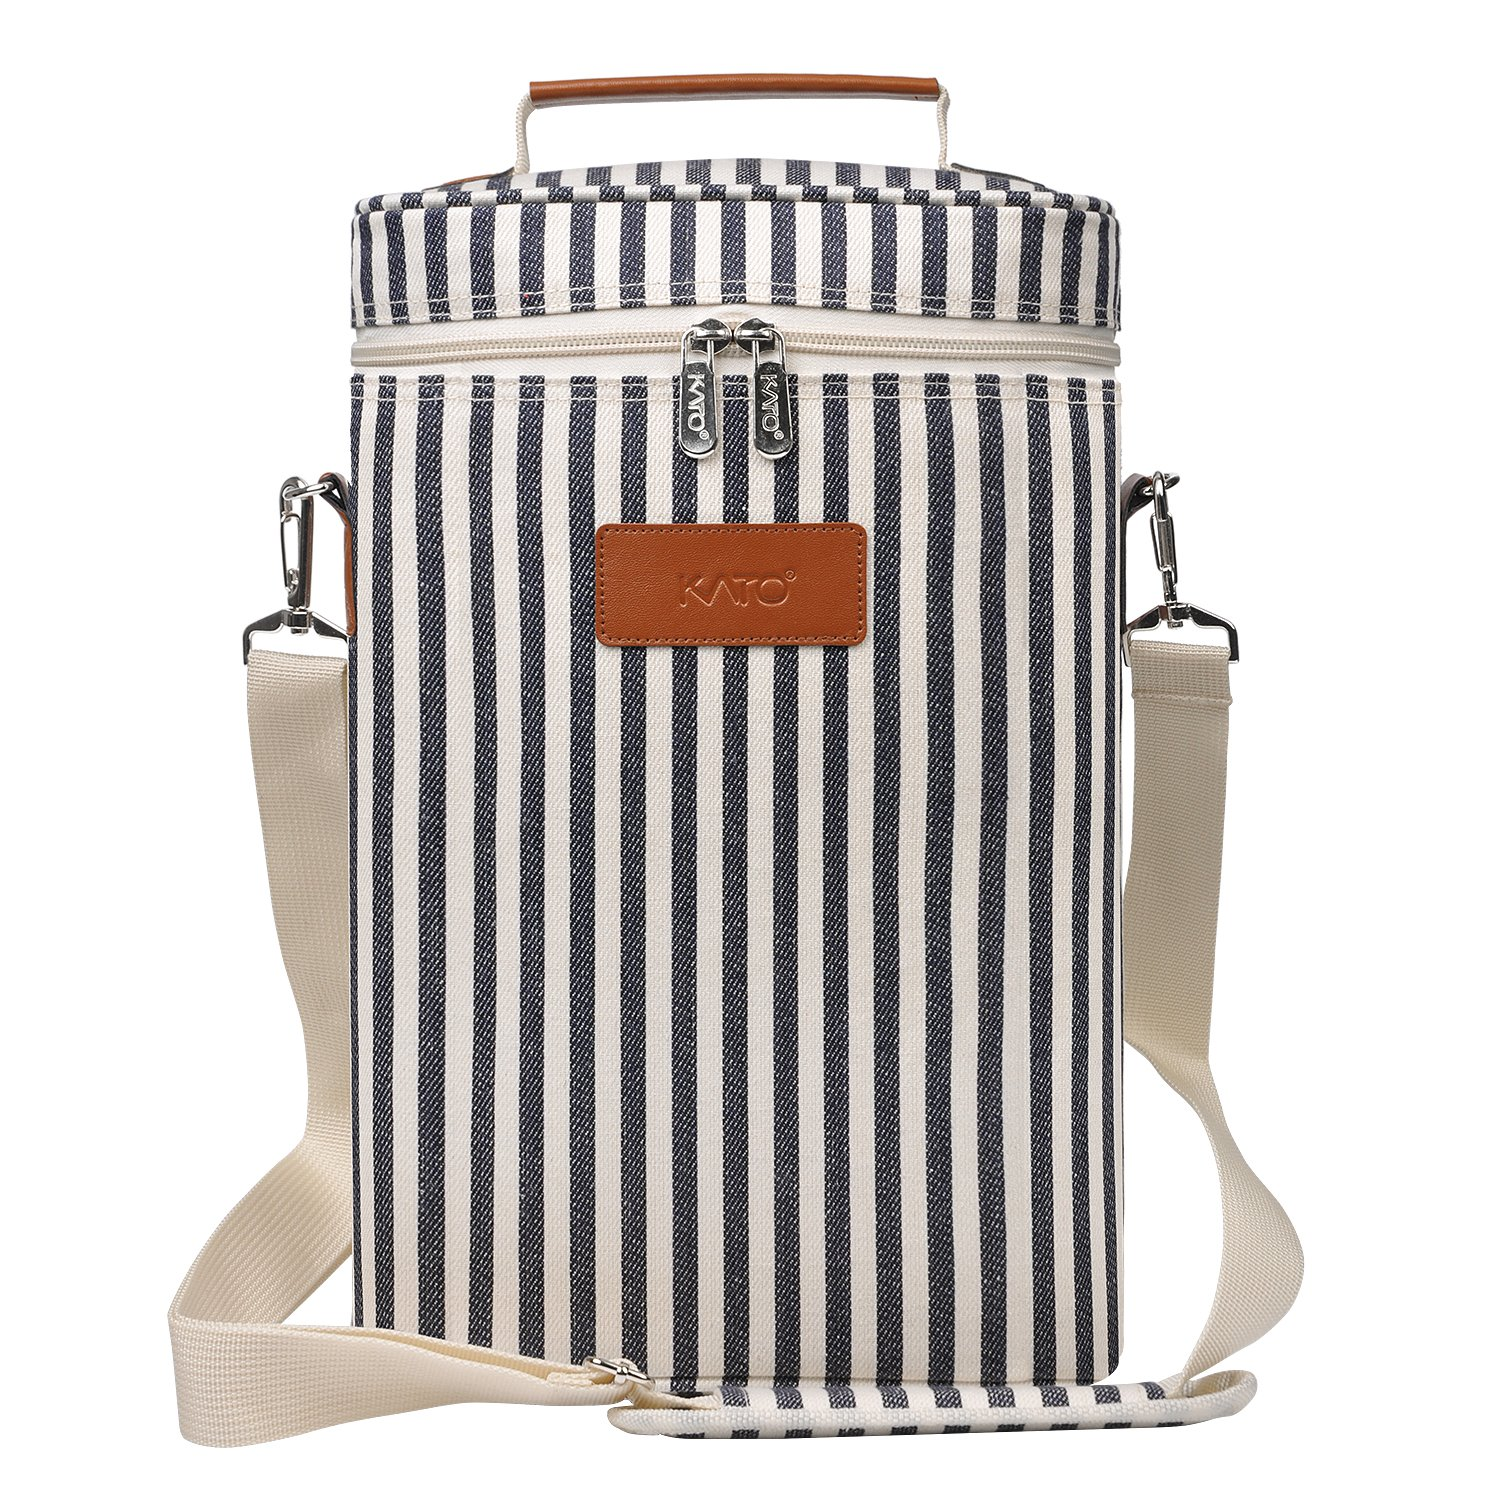 Kato Insulated Wine Tote Carrier - 2 Bottle Travel Padded Wine Cooler Bag with Handle and Adjustable Shoulder Strap, Great Wine Lover Gift, Stripe